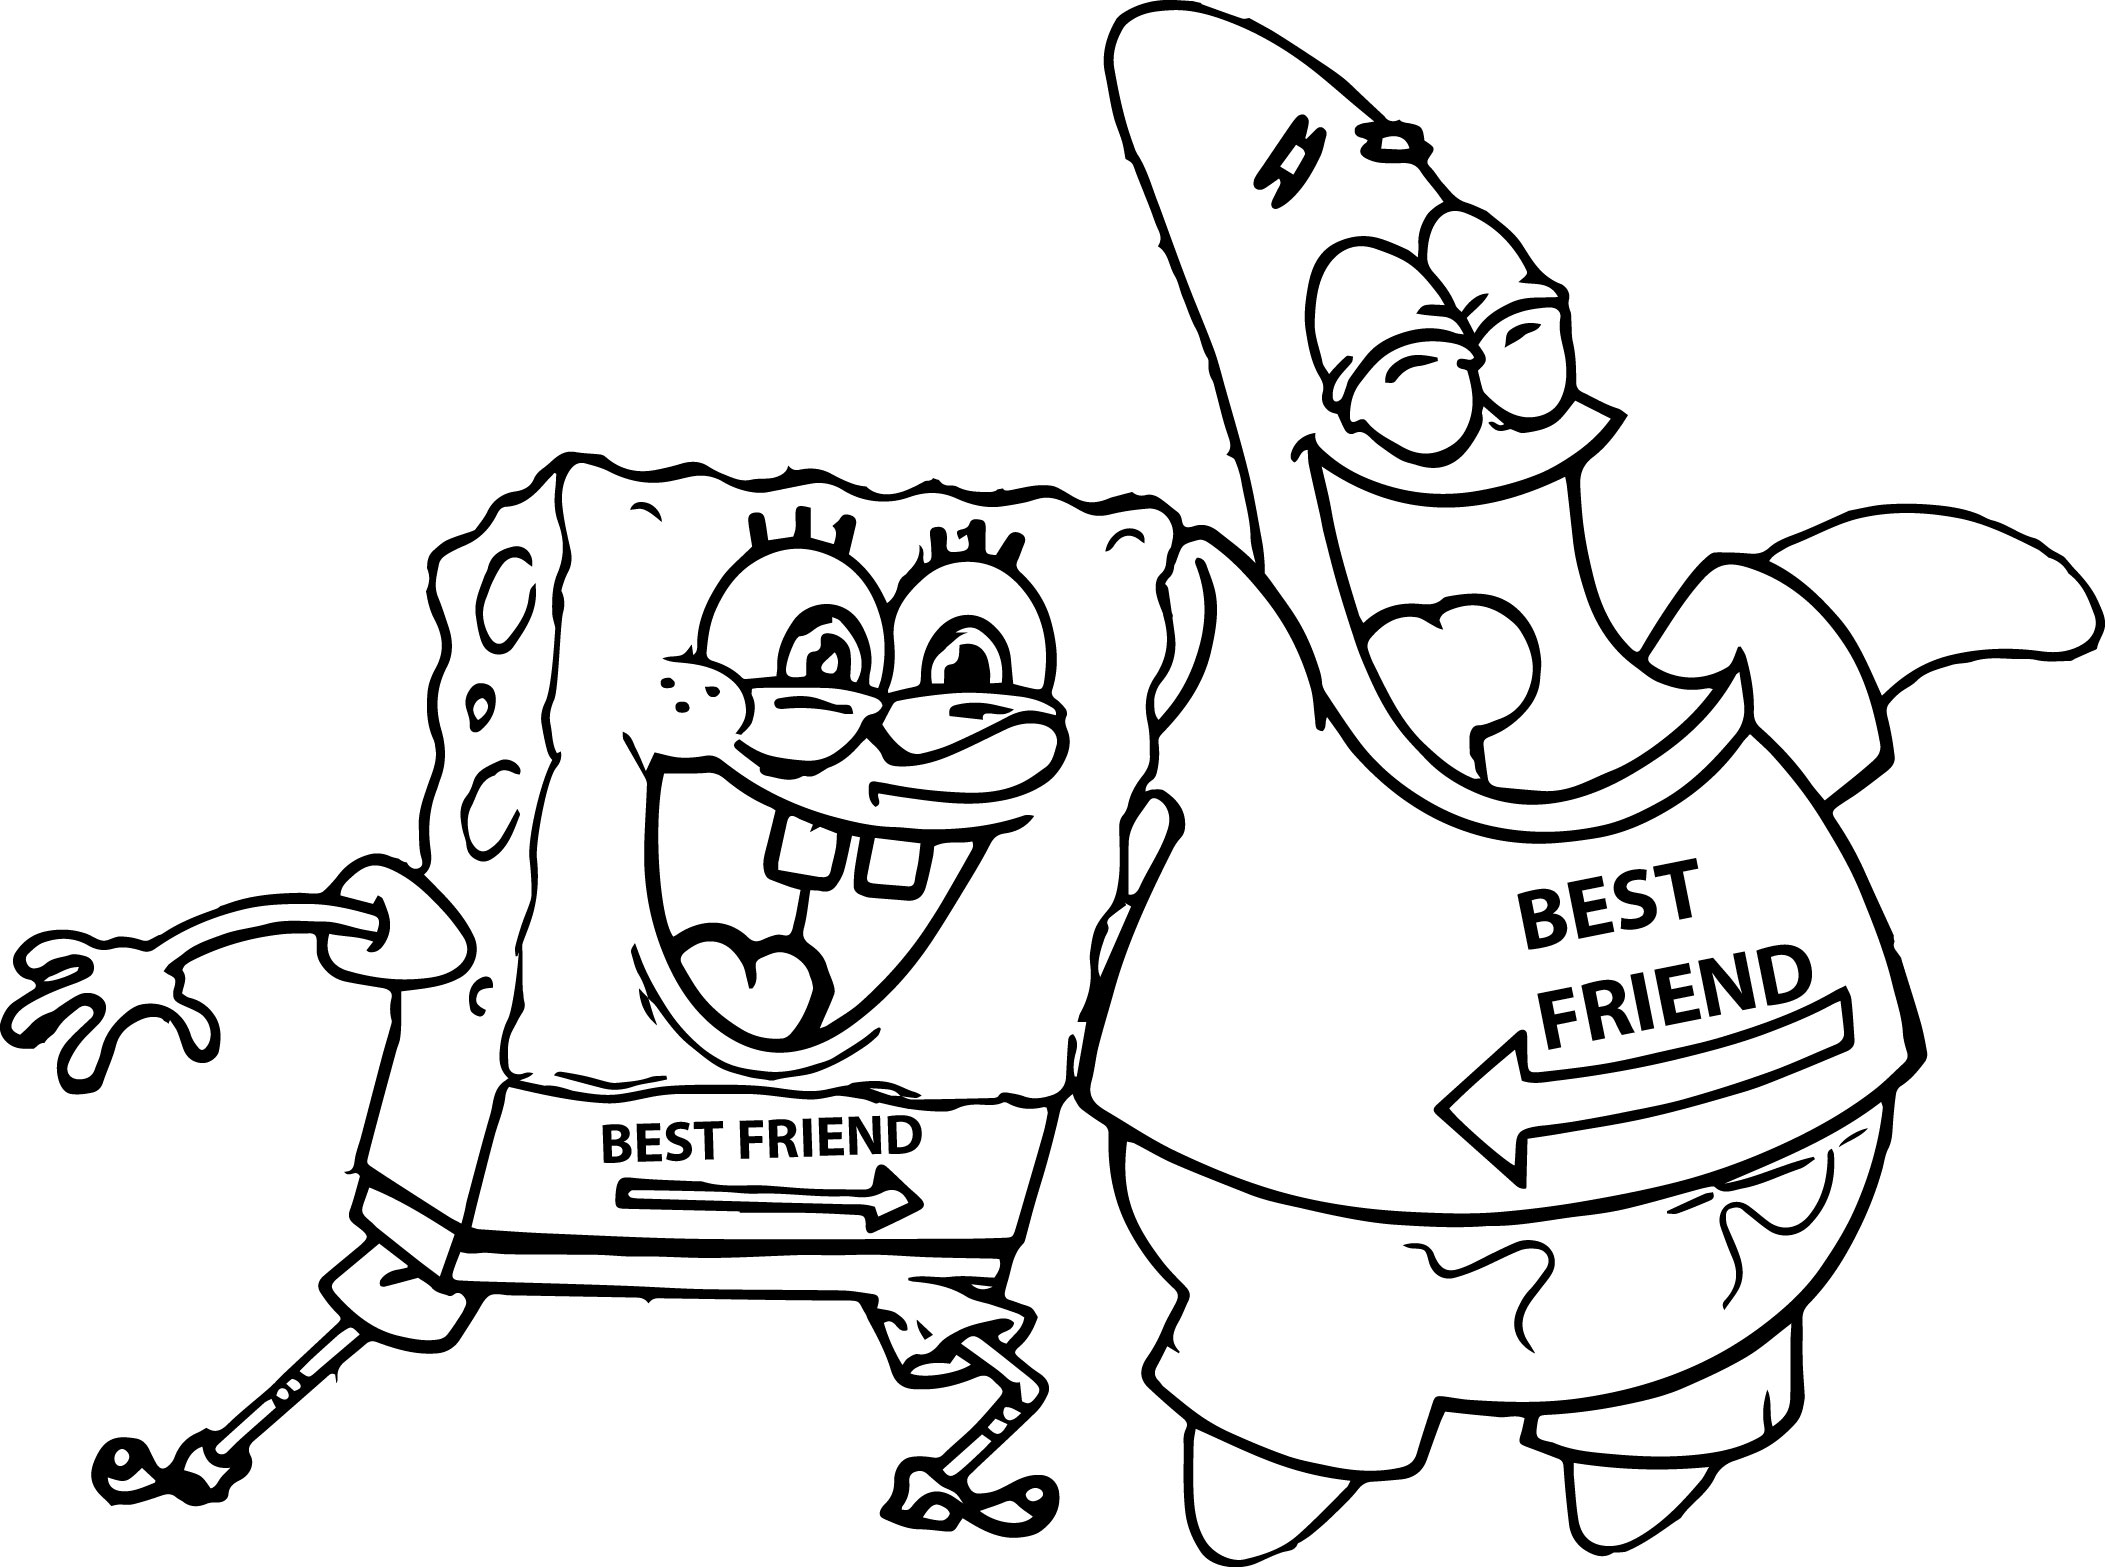 Best friend coloring pages to download and print for free for Friends coloring pages for preschoolers